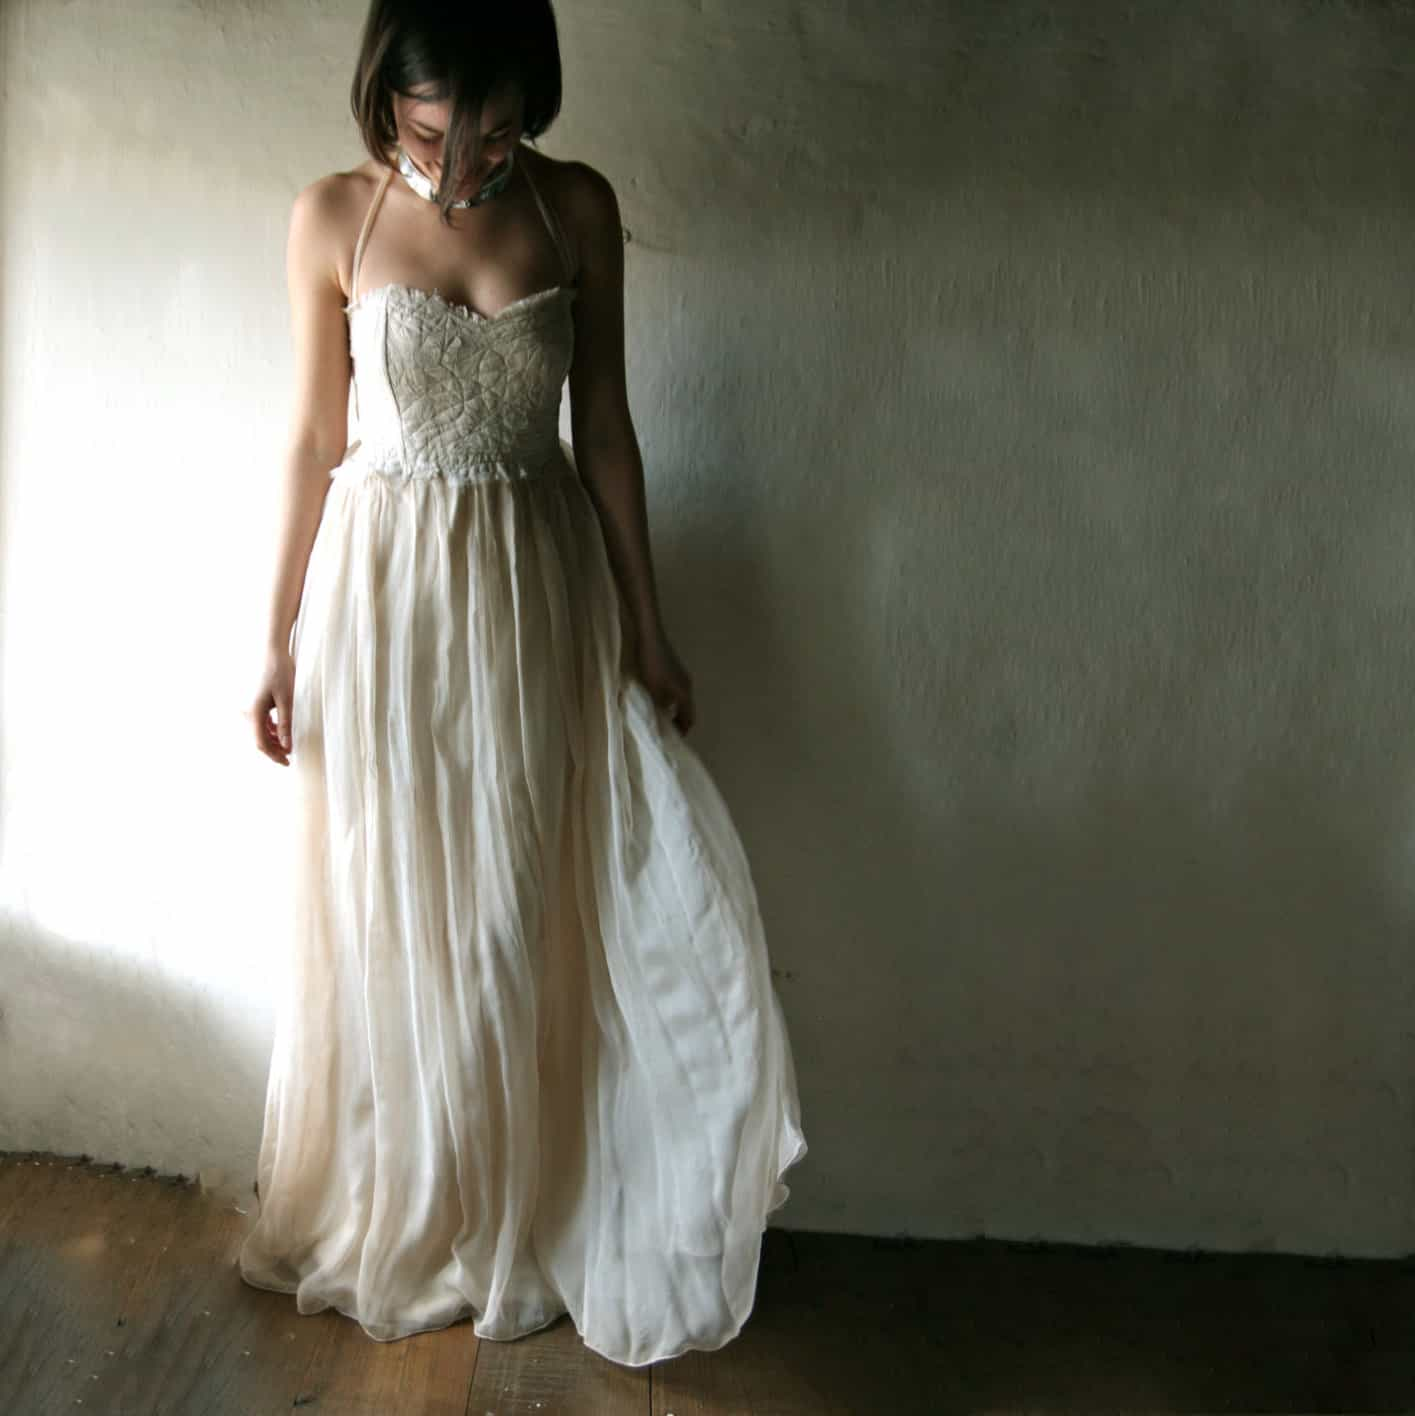 Rustic boho wedding dress for outdoor beach weddings, handmade in italy